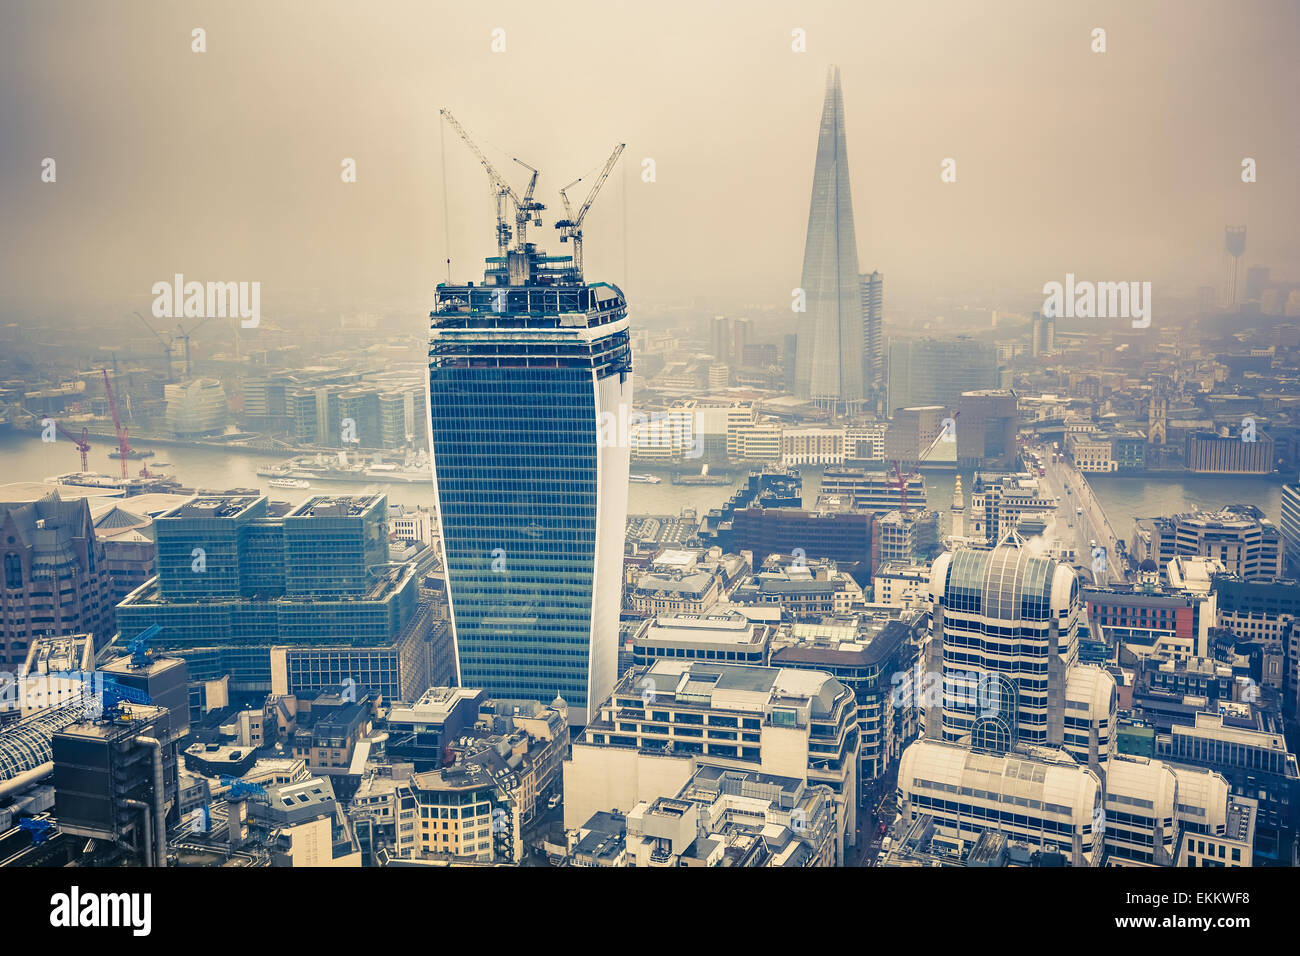 Londoner city Stockbild